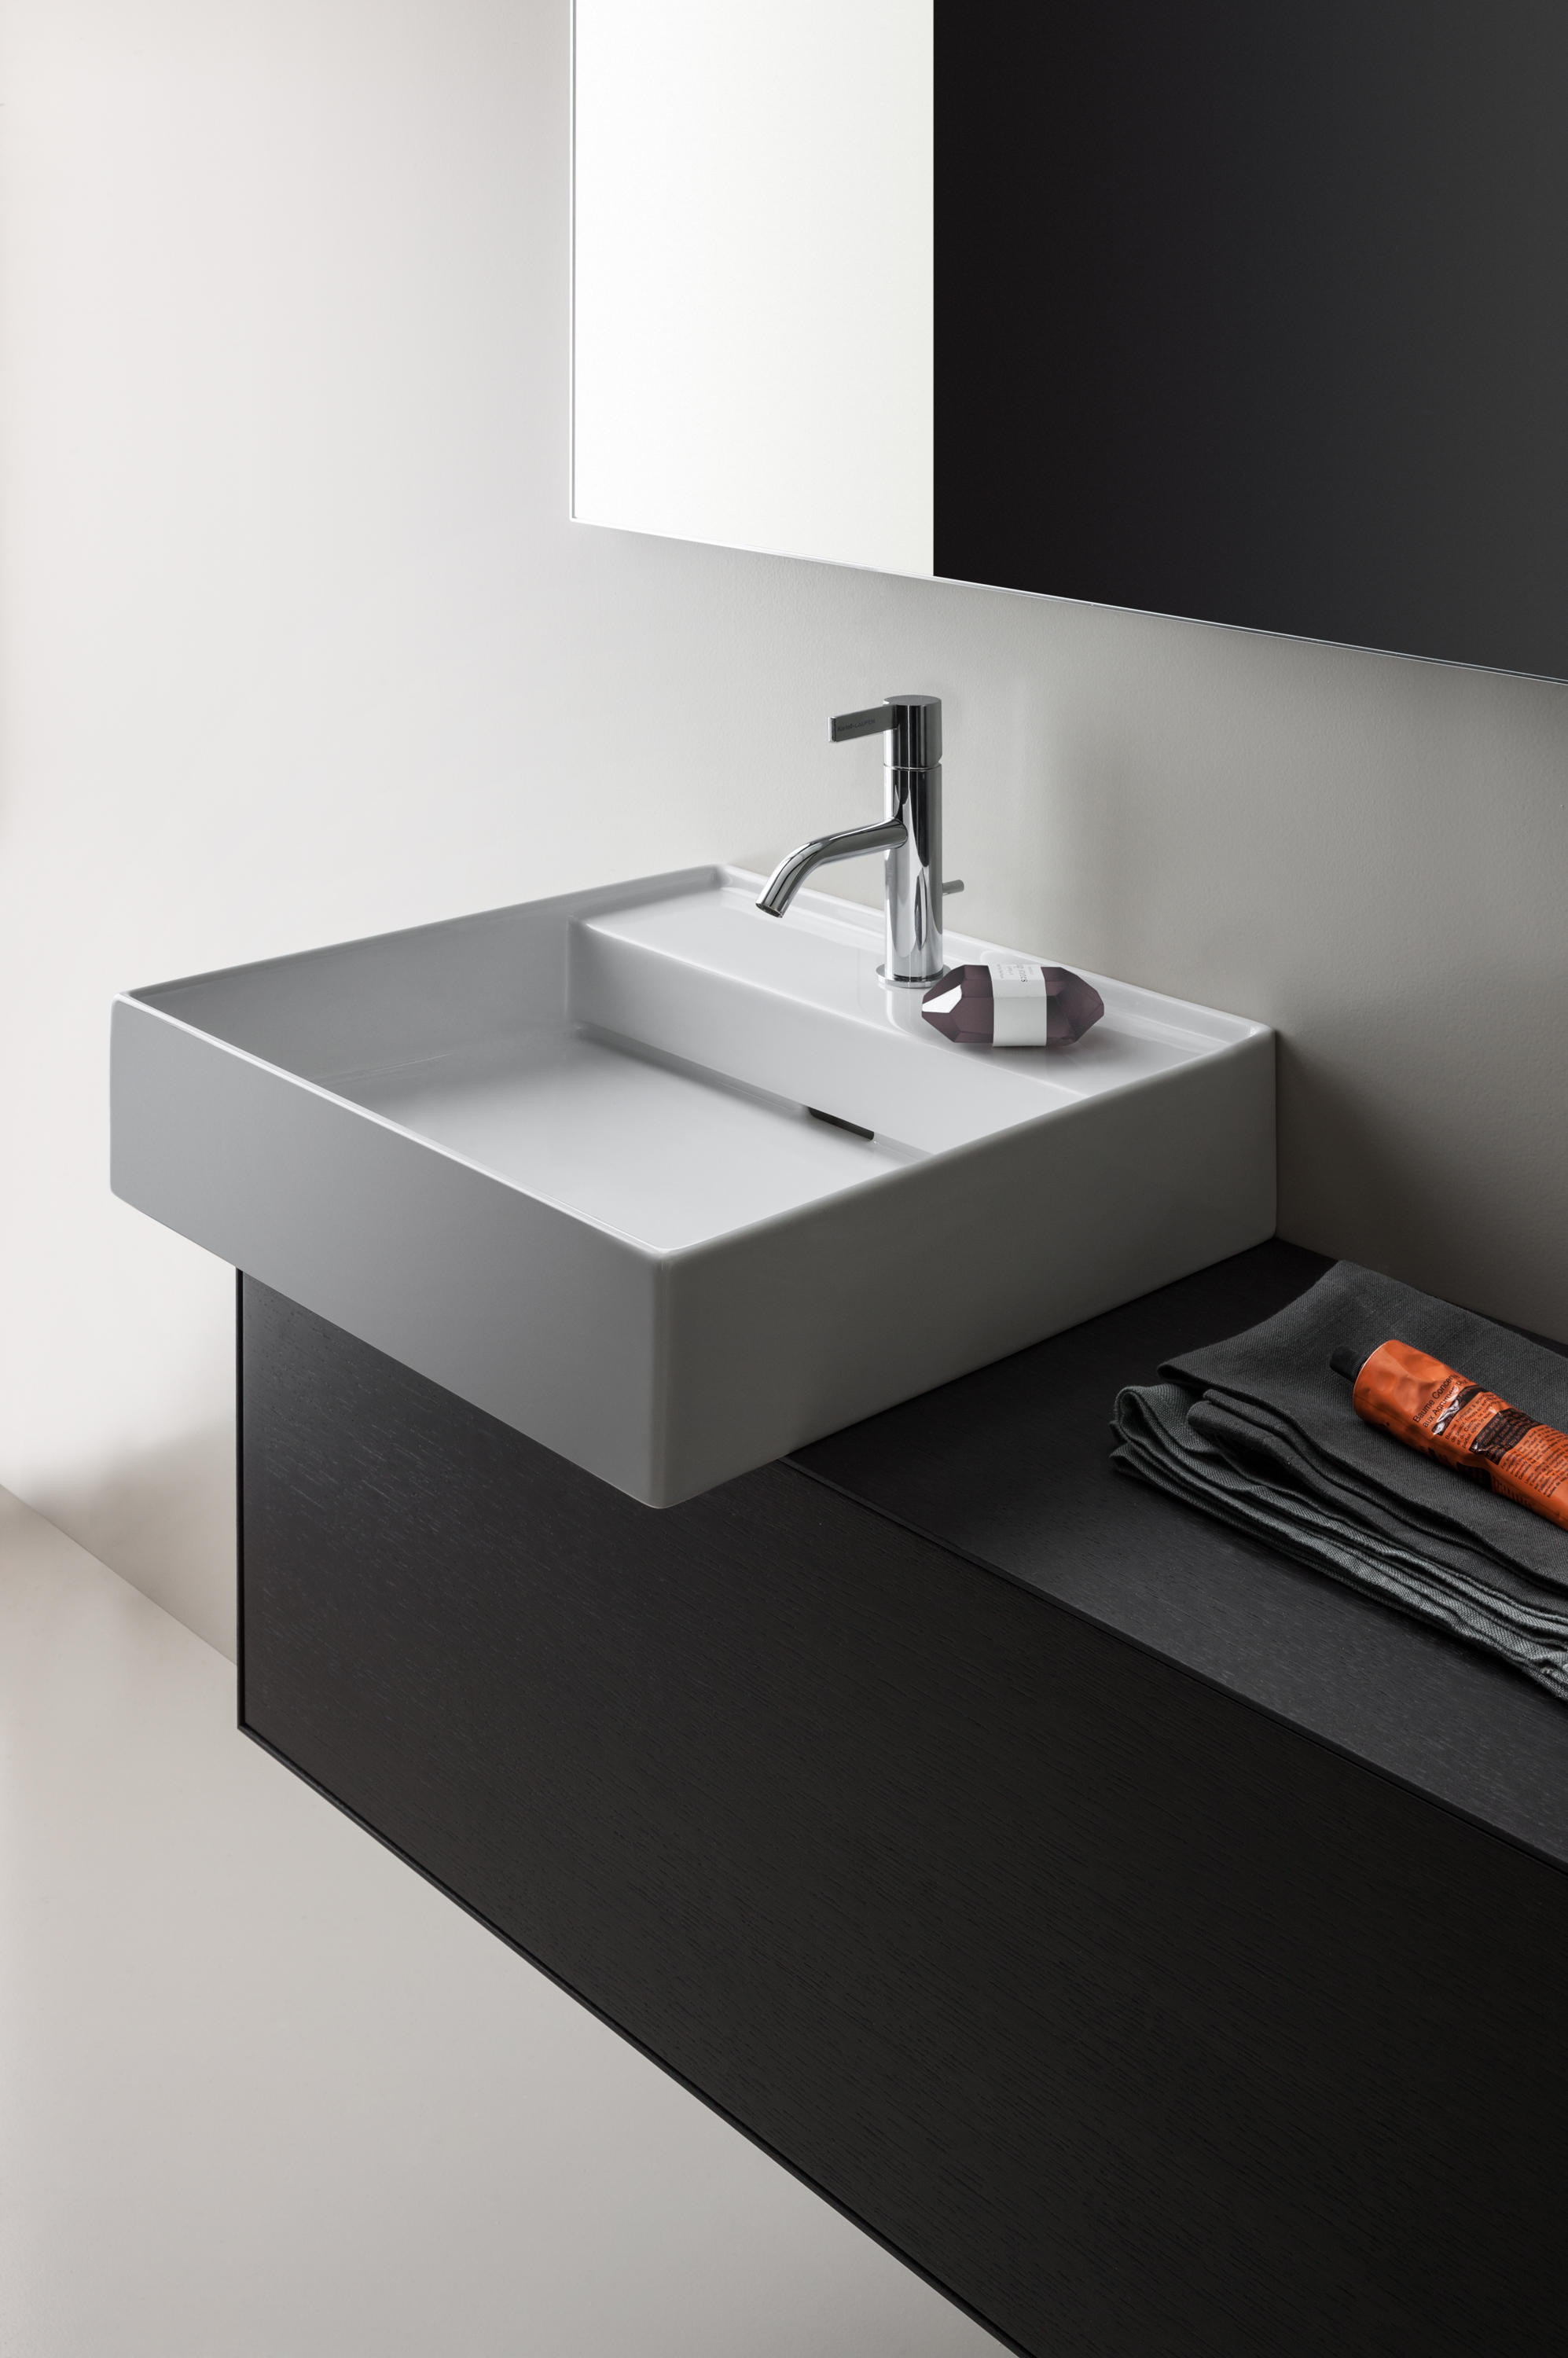 kartell by laufen freestanding washbasin wash basins from laufen architonic. Black Bedroom Furniture Sets. Home Design Ideas